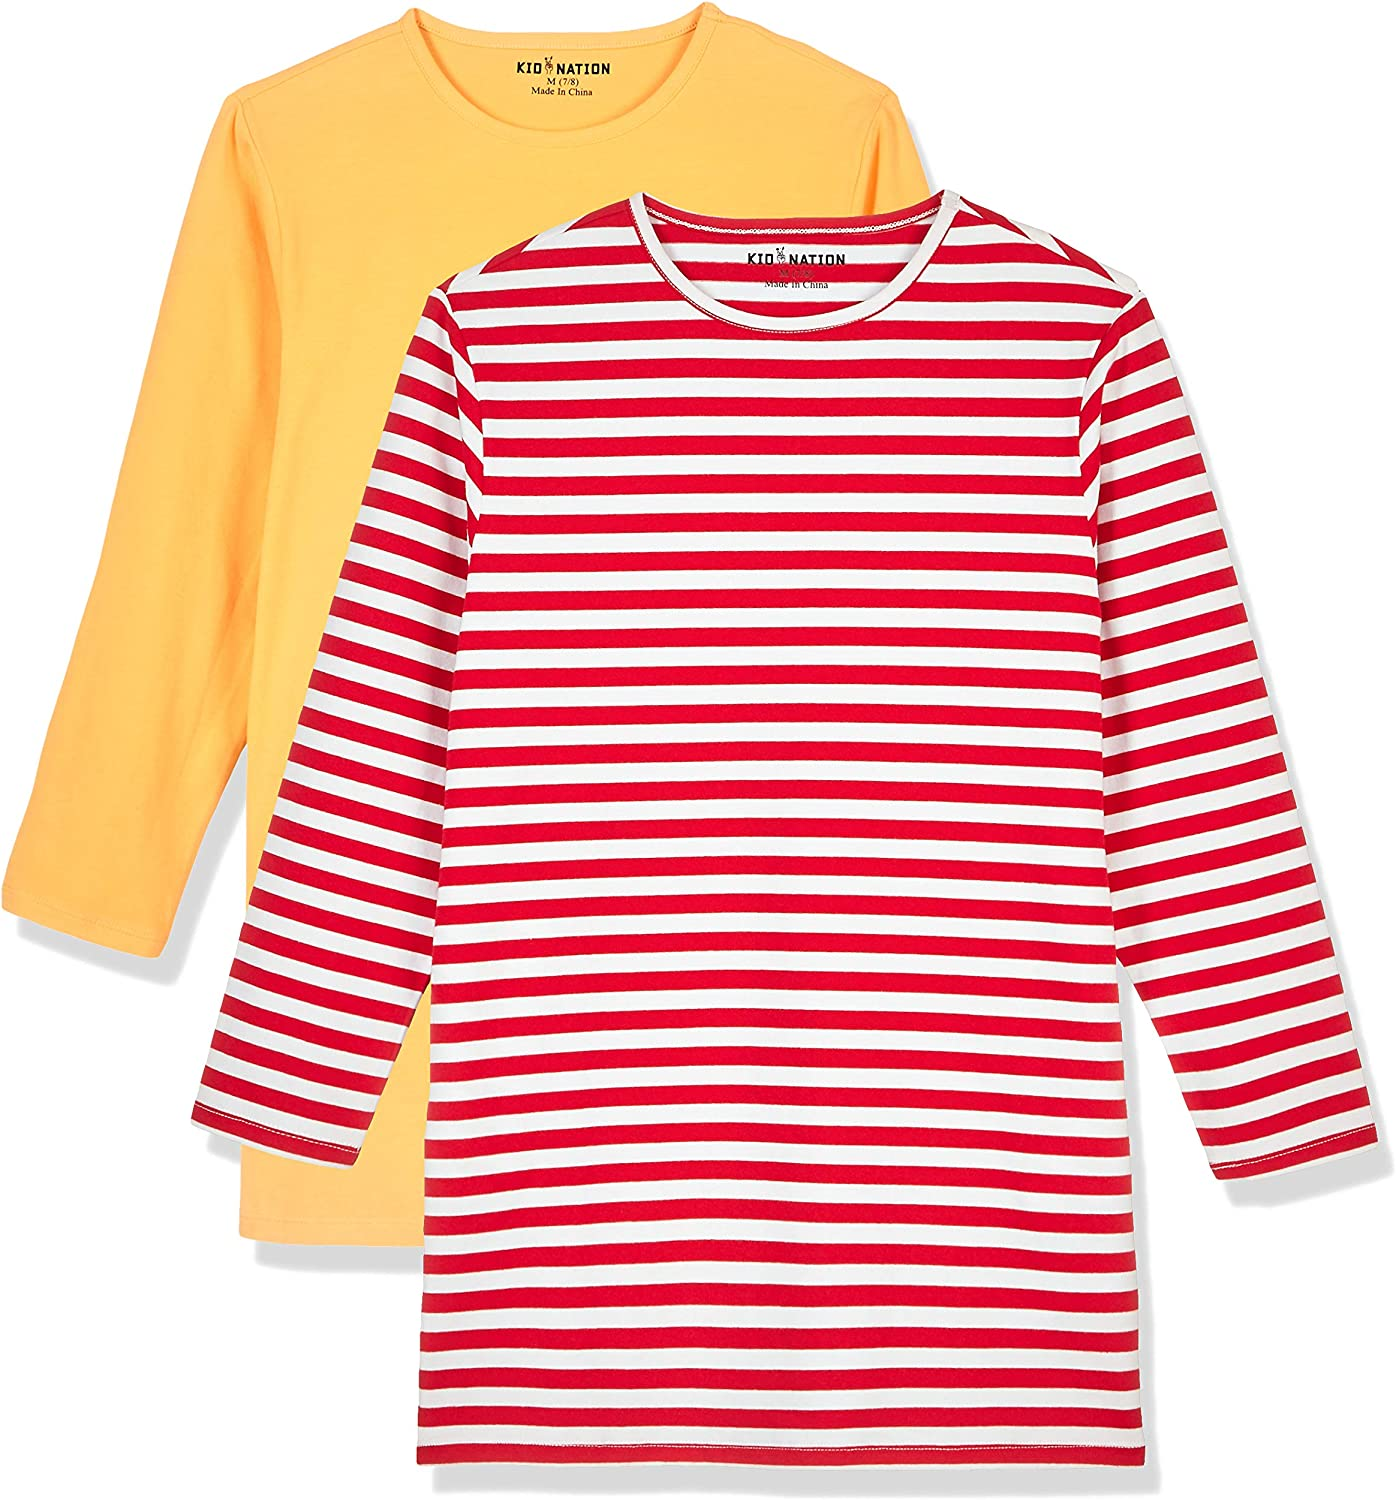 Kid Nation Girls Yarn Dyed Stripe Long Sleeve Crew Neck Dress with Side Pockets 4-12 Years